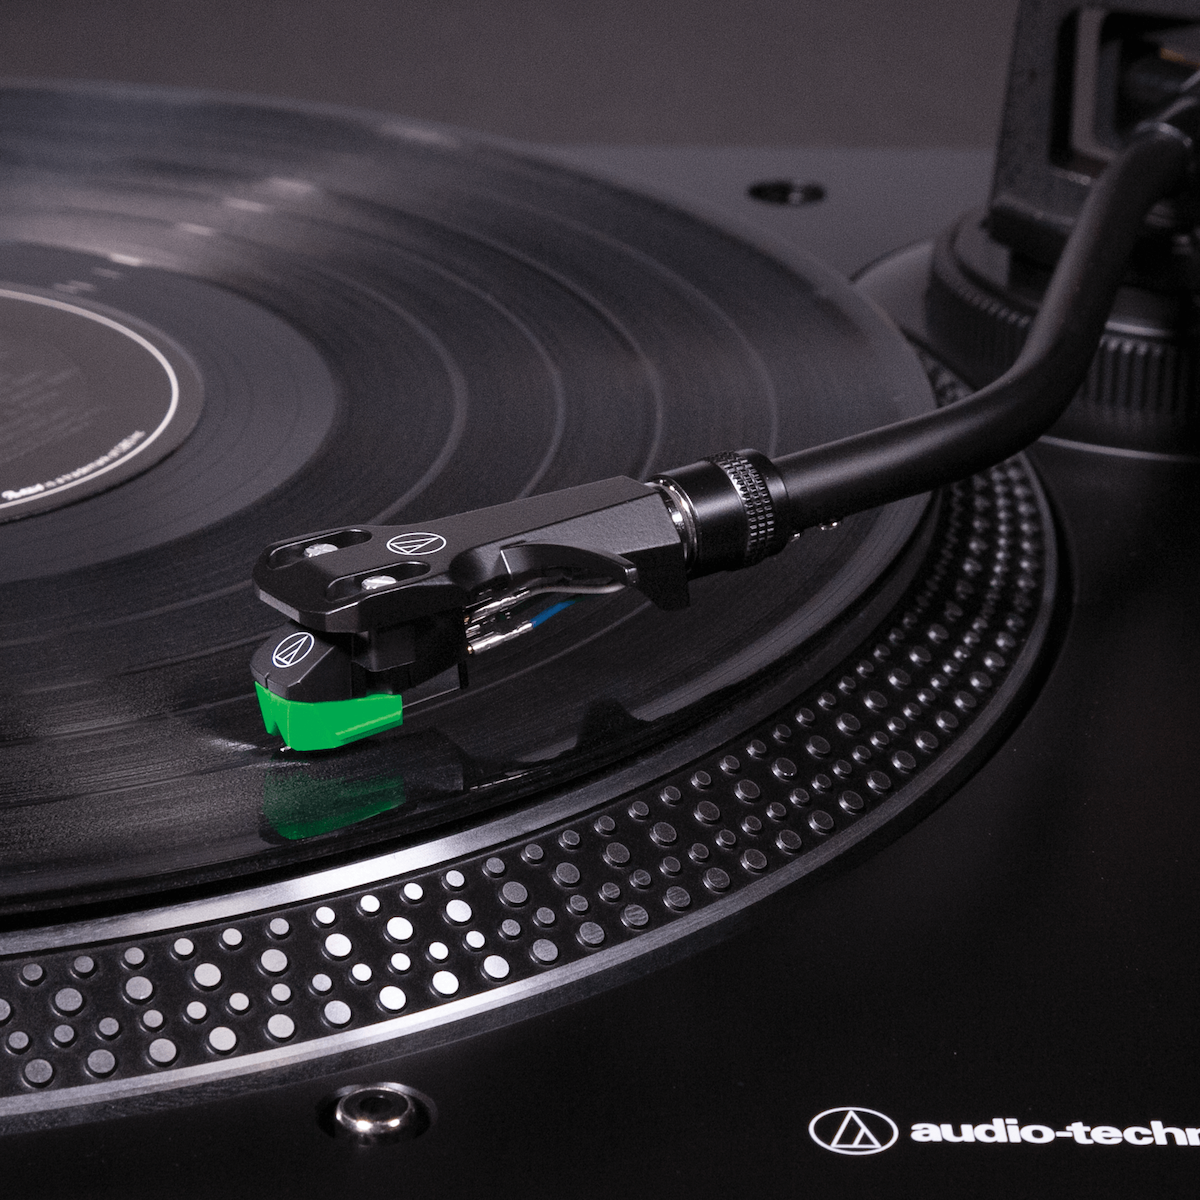 Audio-Technica AT-LP12-XBT turntable